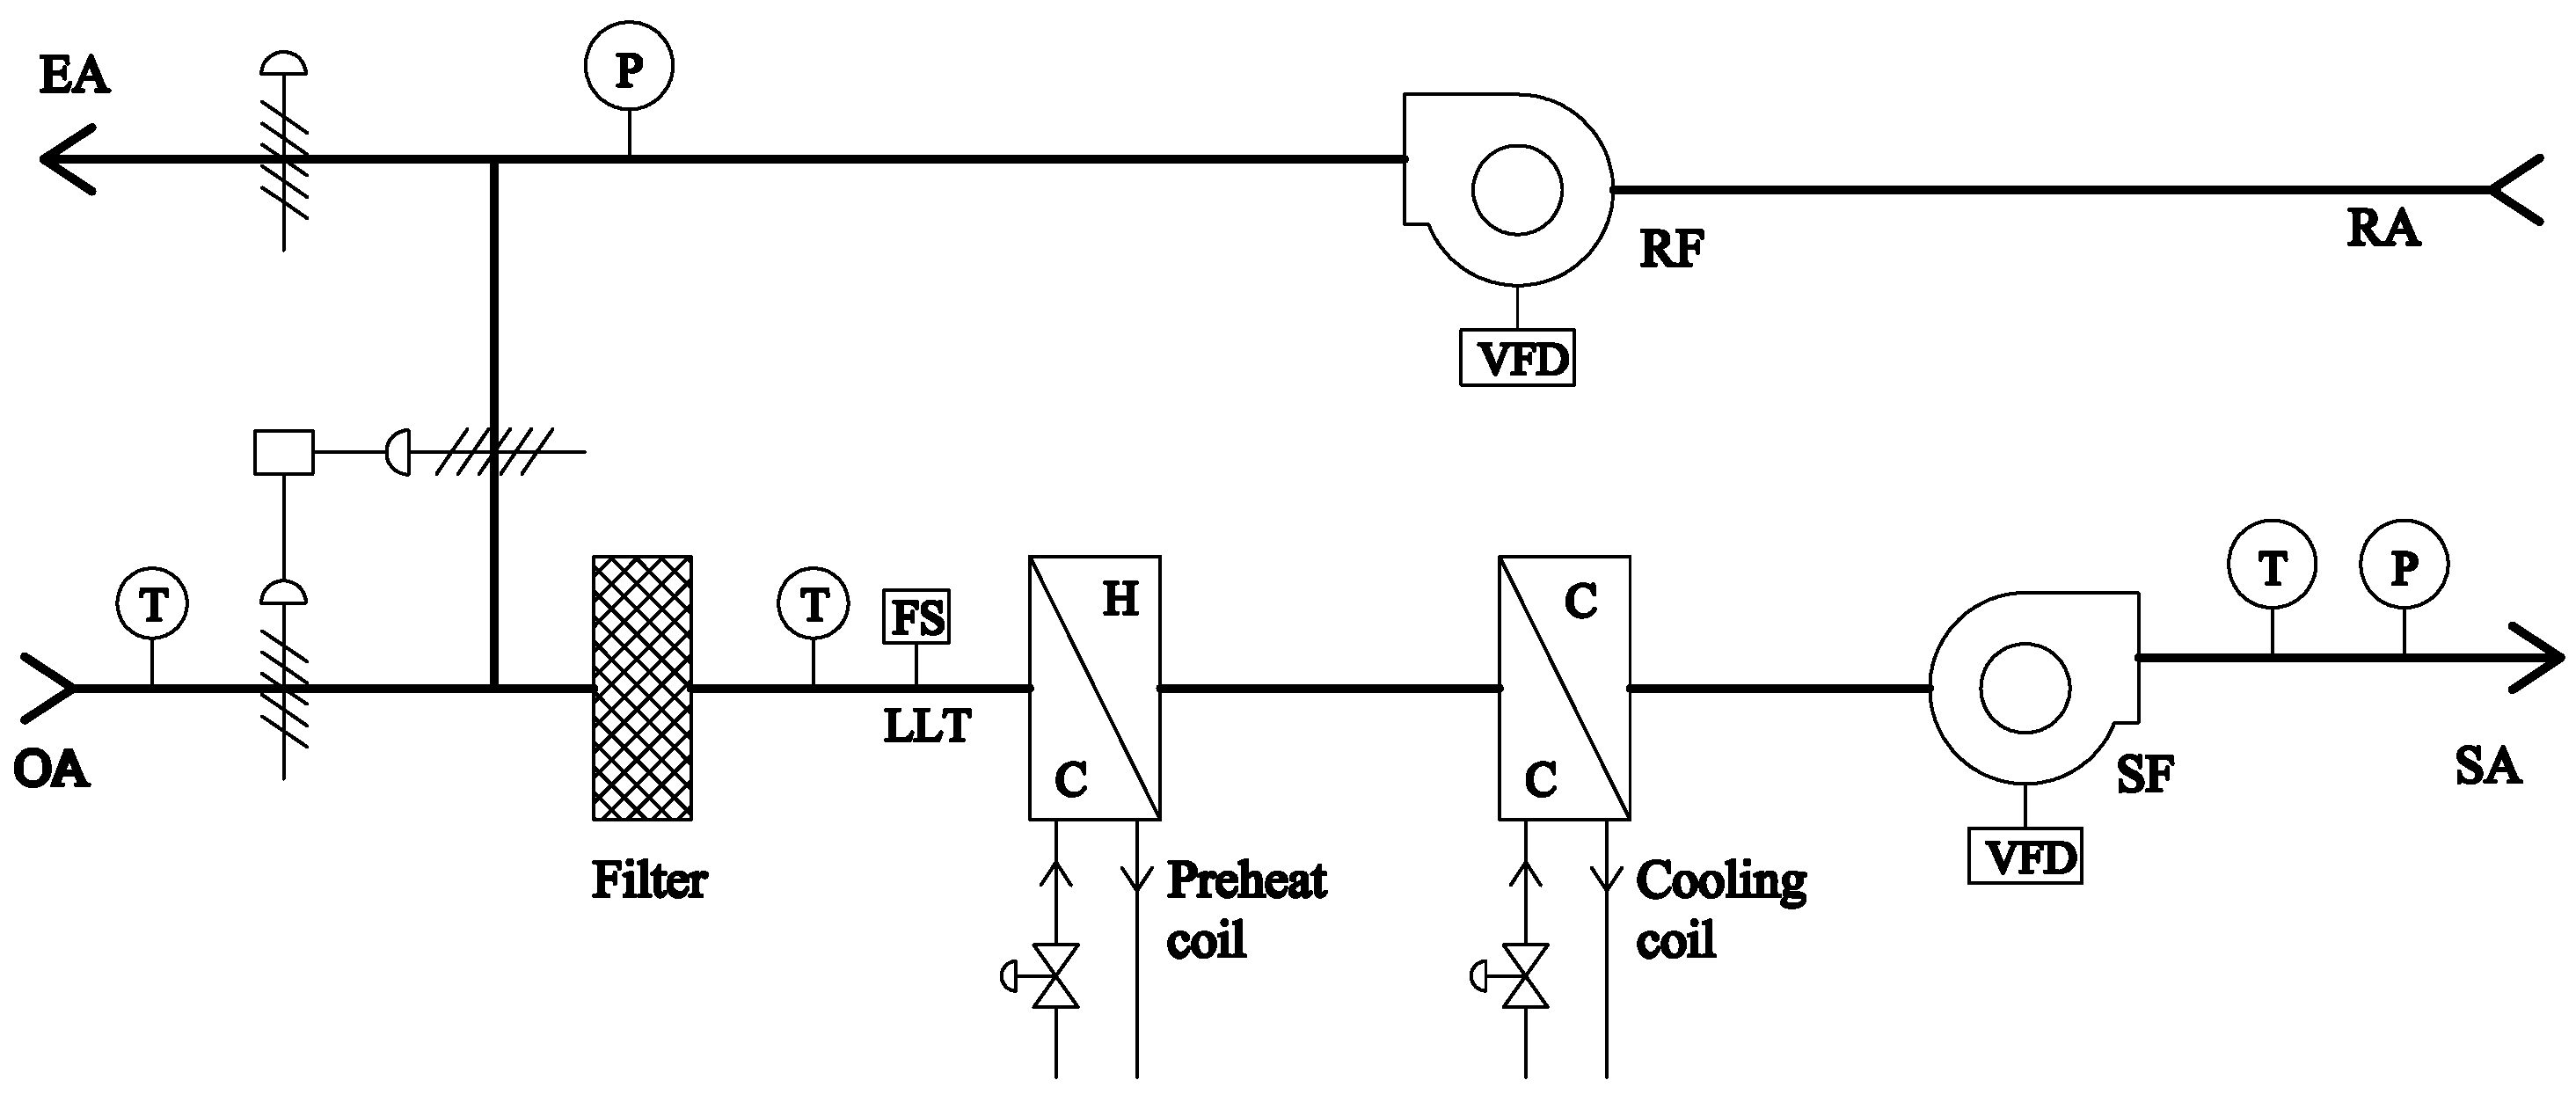 Unitary Product Rtu Wiring Diagram Heater